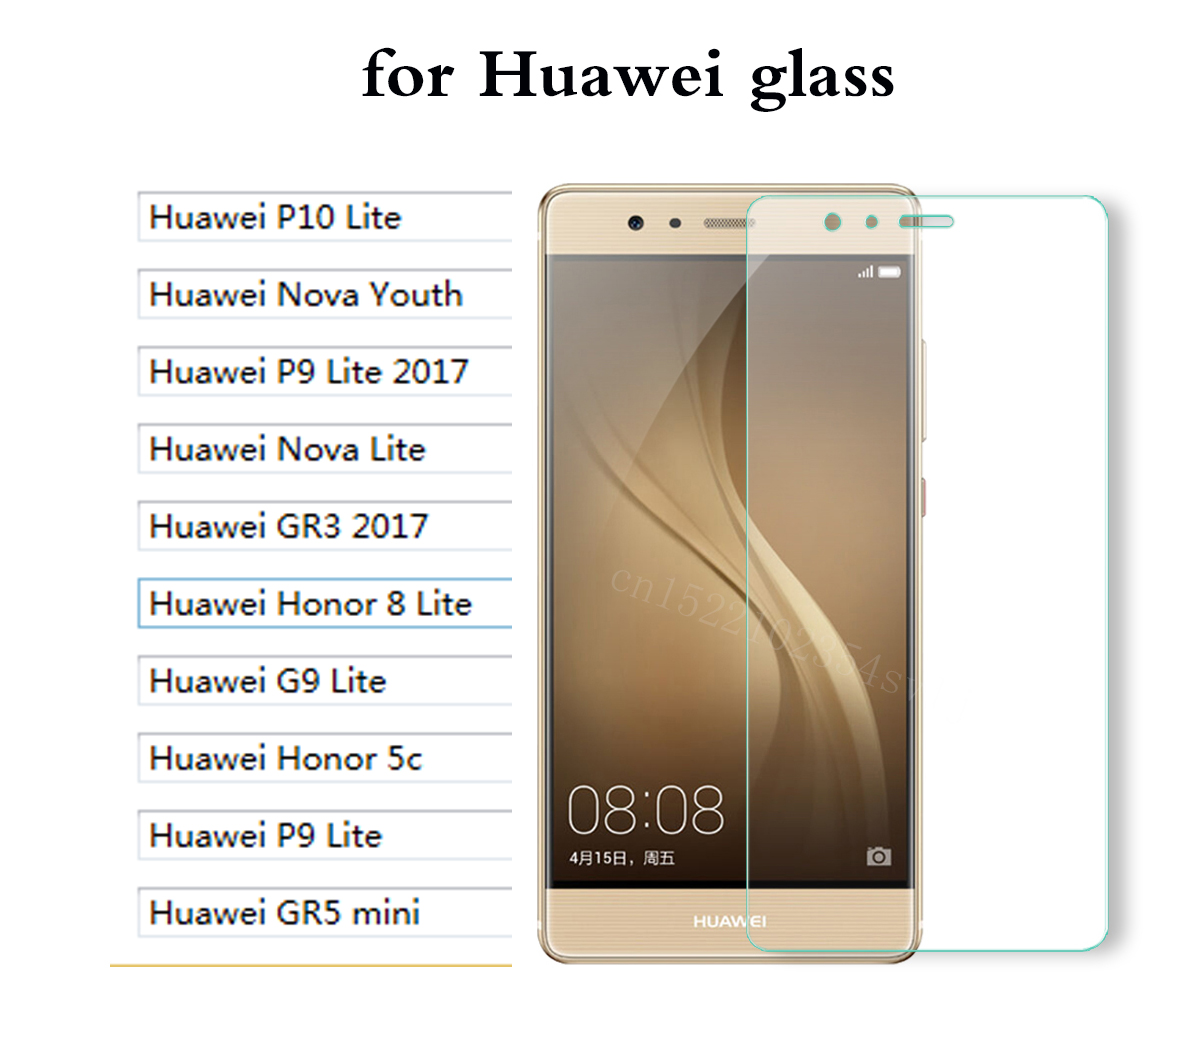 Transparent <font><b>Screen</b></font> Glass for <font><b>Huawei</b></font> P10 Lite Nova Youth P9 Lite <font><b>2017</b></font> <font><b>GR3</b></font> <font><b>2017</b></font> Honor 5c P9 8 G9 Lite GR5 mini tempering glass < image